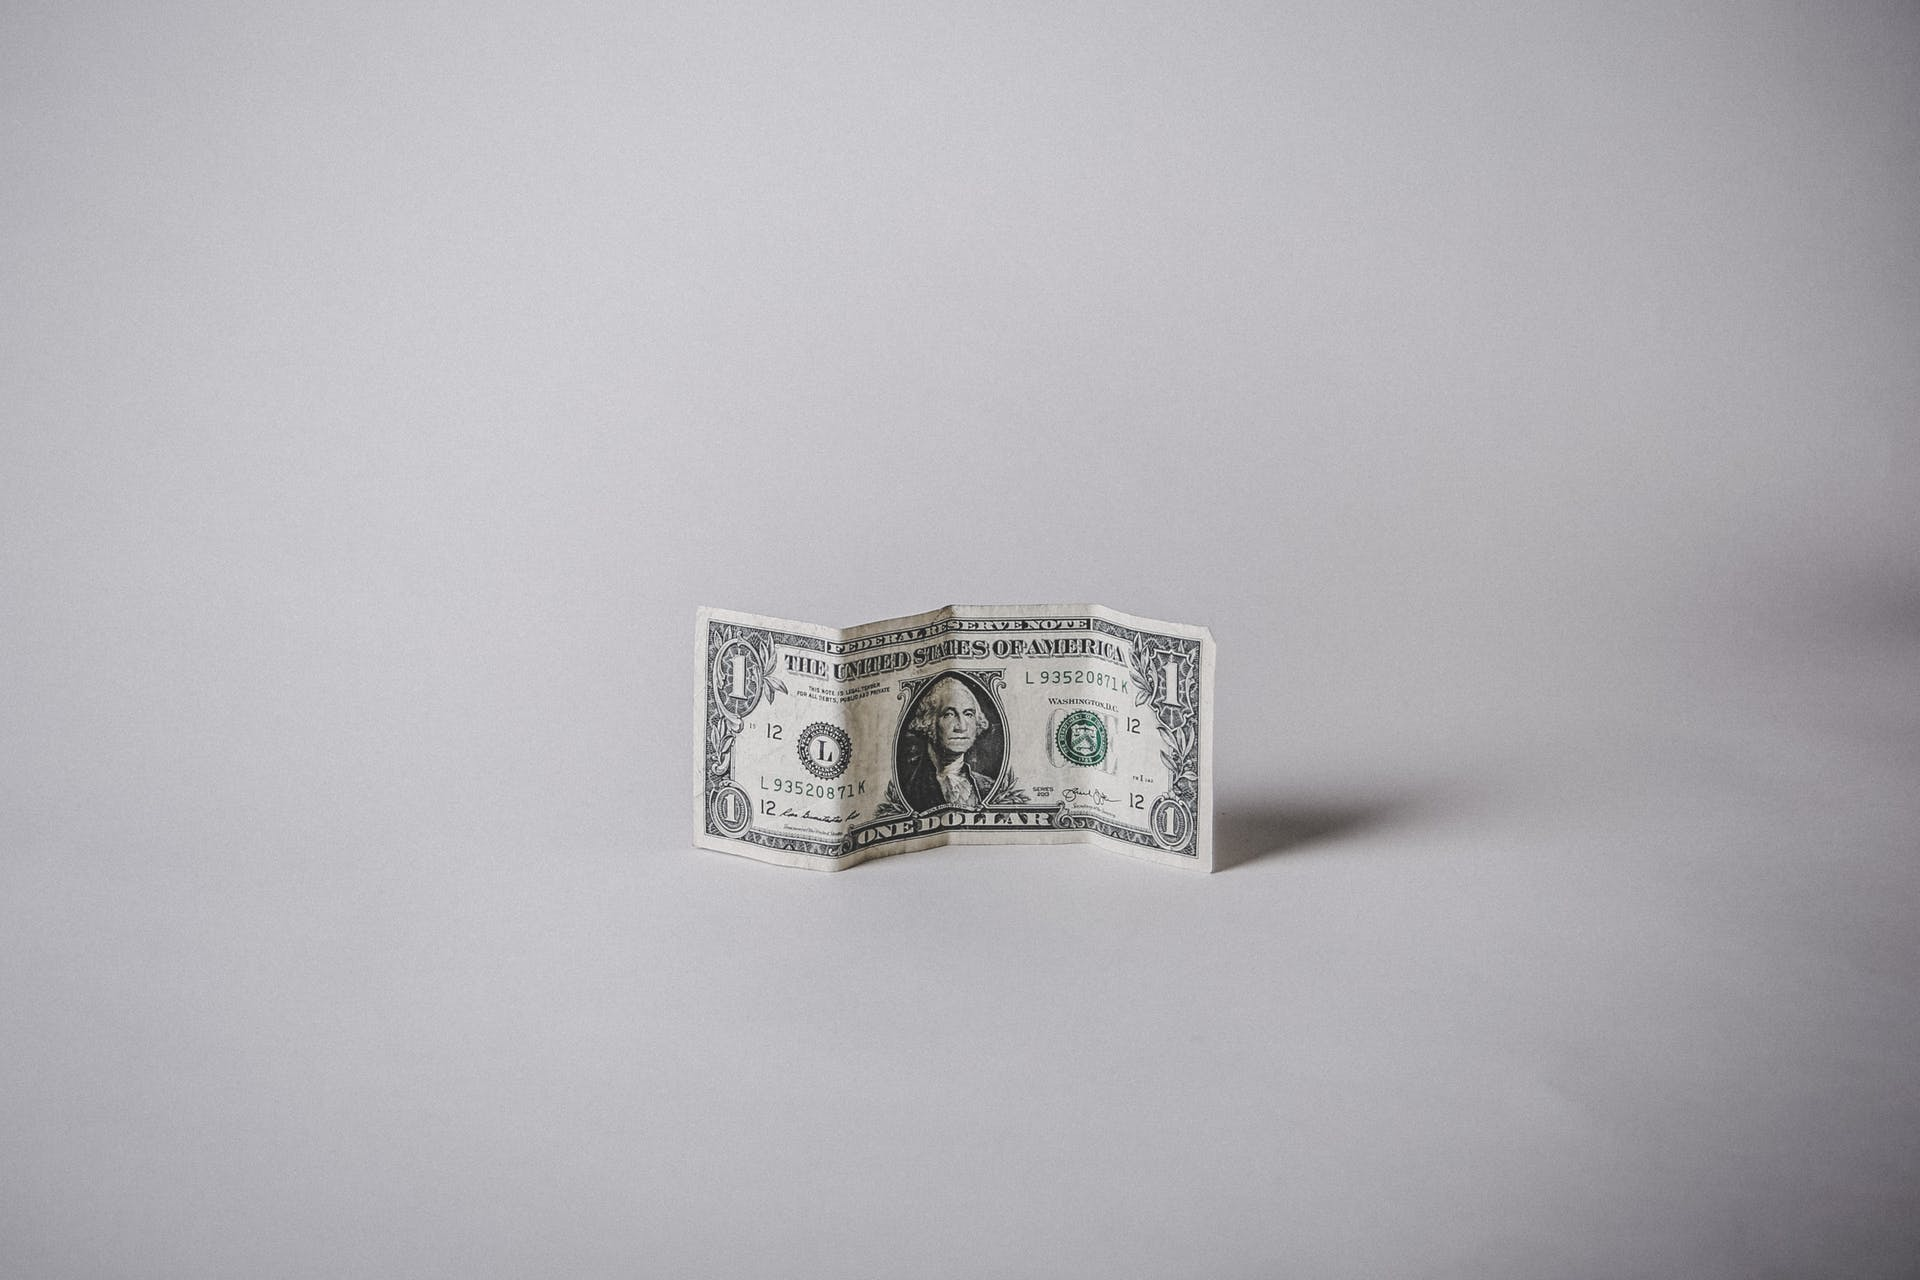 1 US dollar banknote against a white background